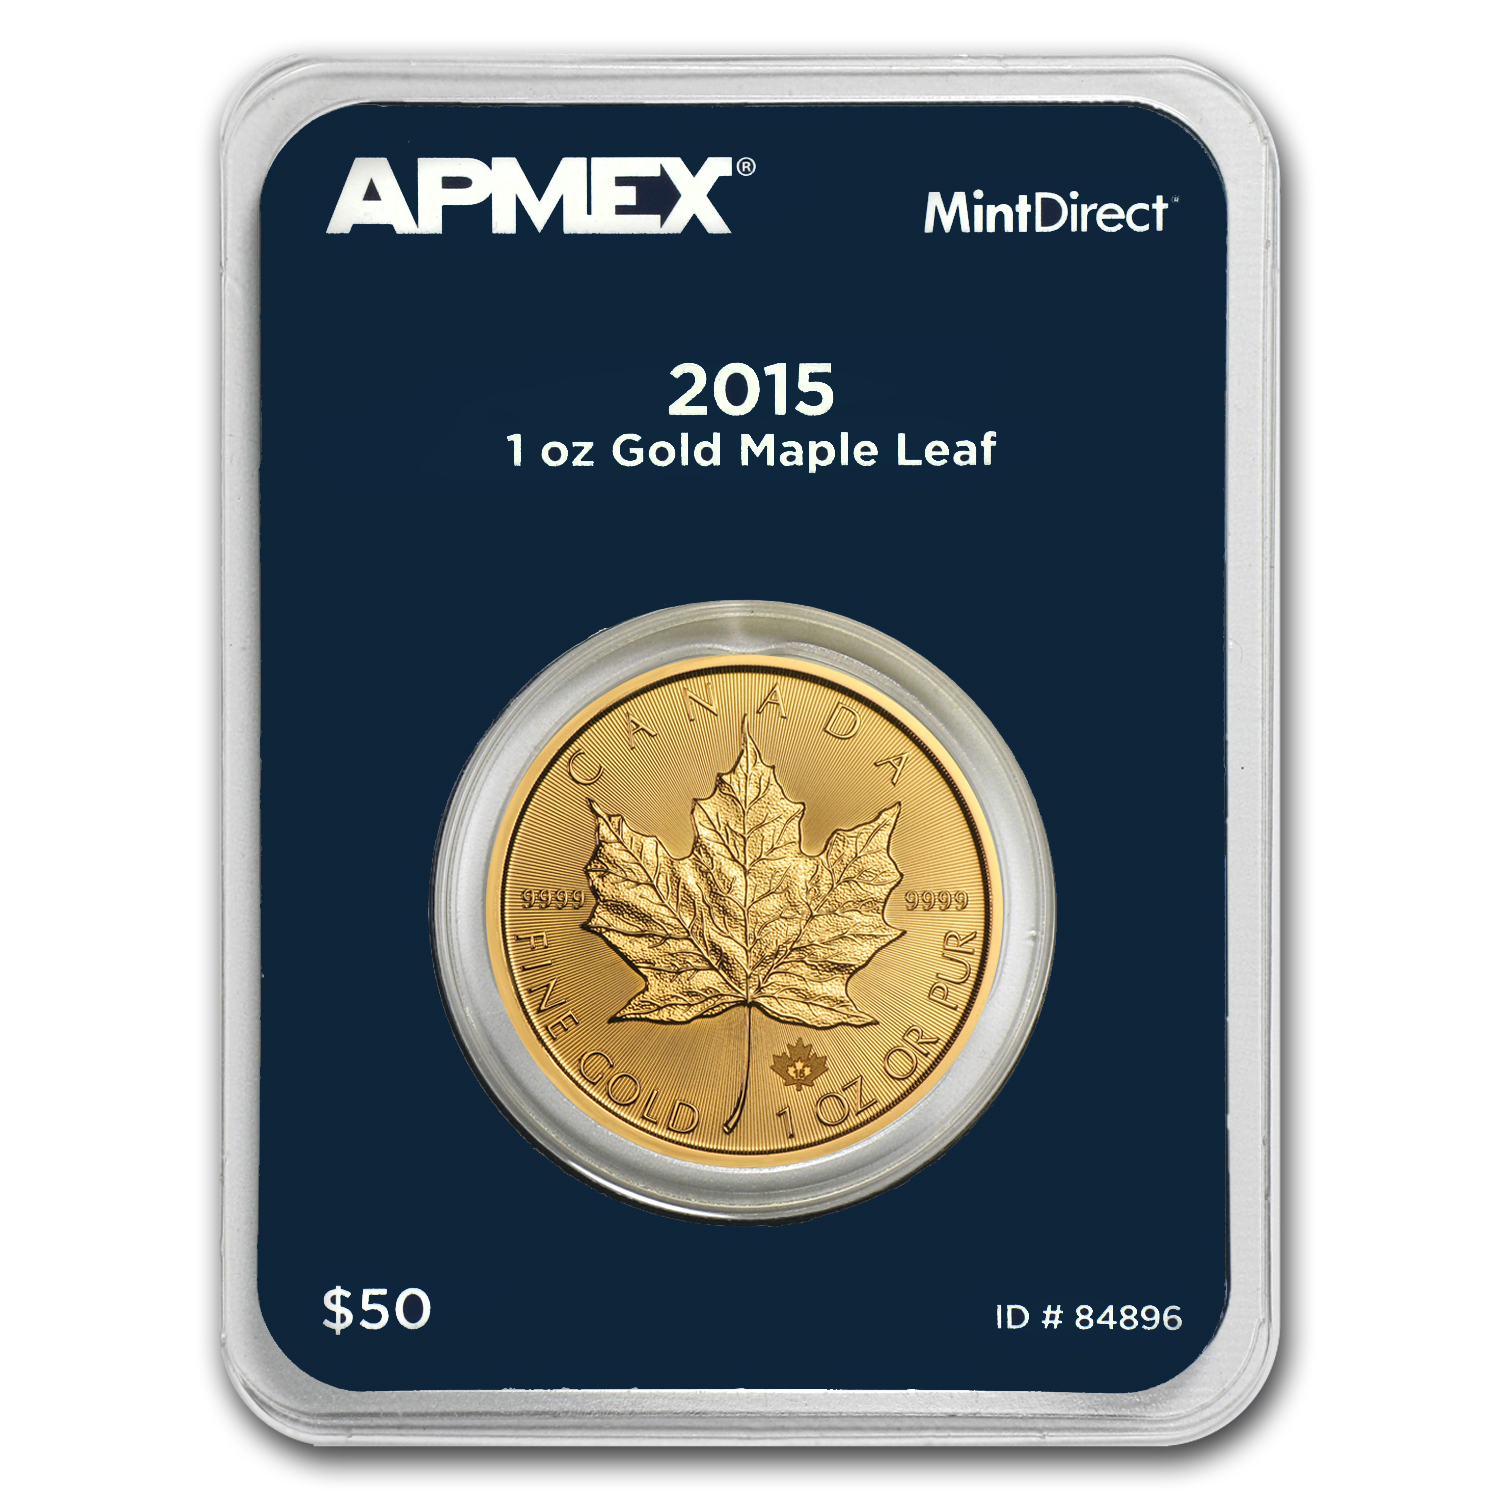 2015 Canada 1 oz Gold Maple Leaf (MintDirect® Single)